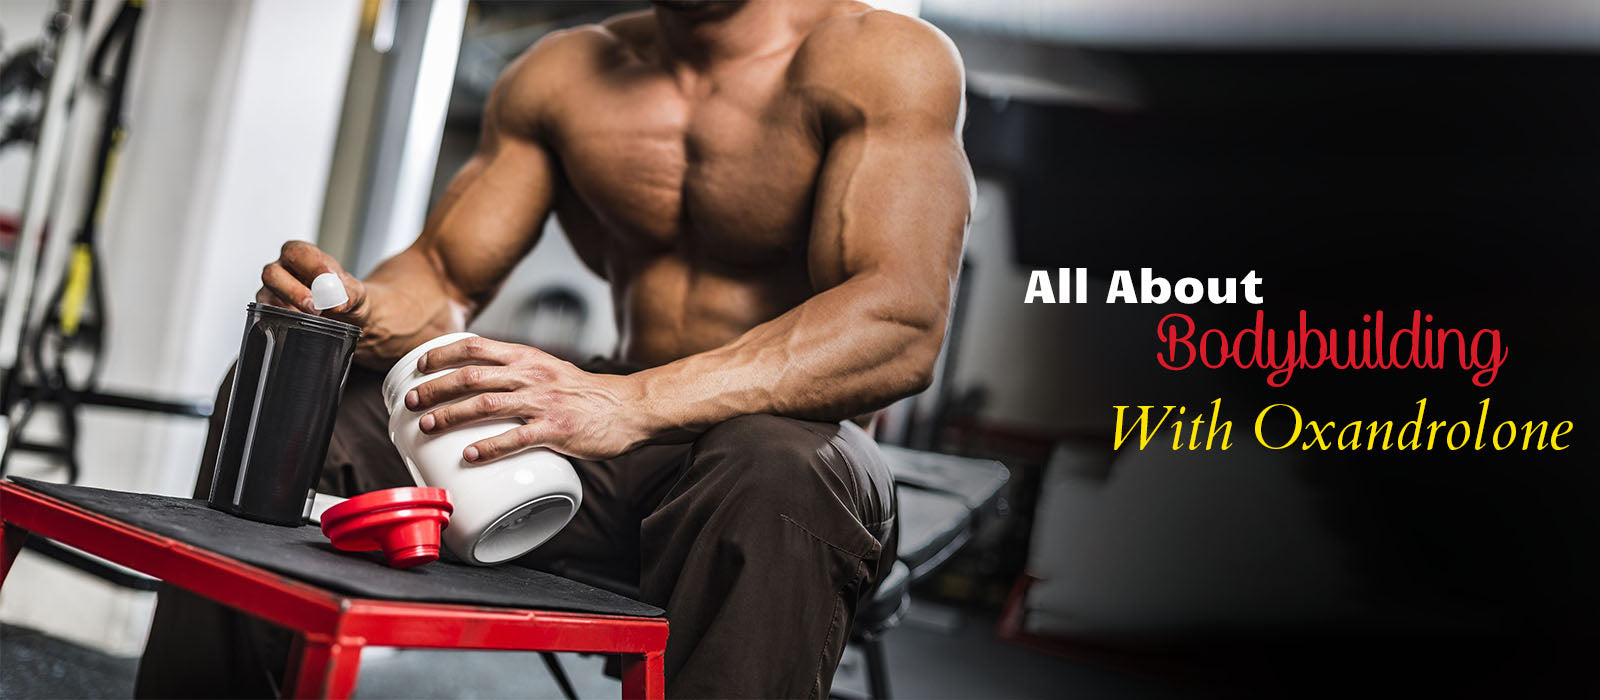 All About Bodybuilding With Oxandrolone